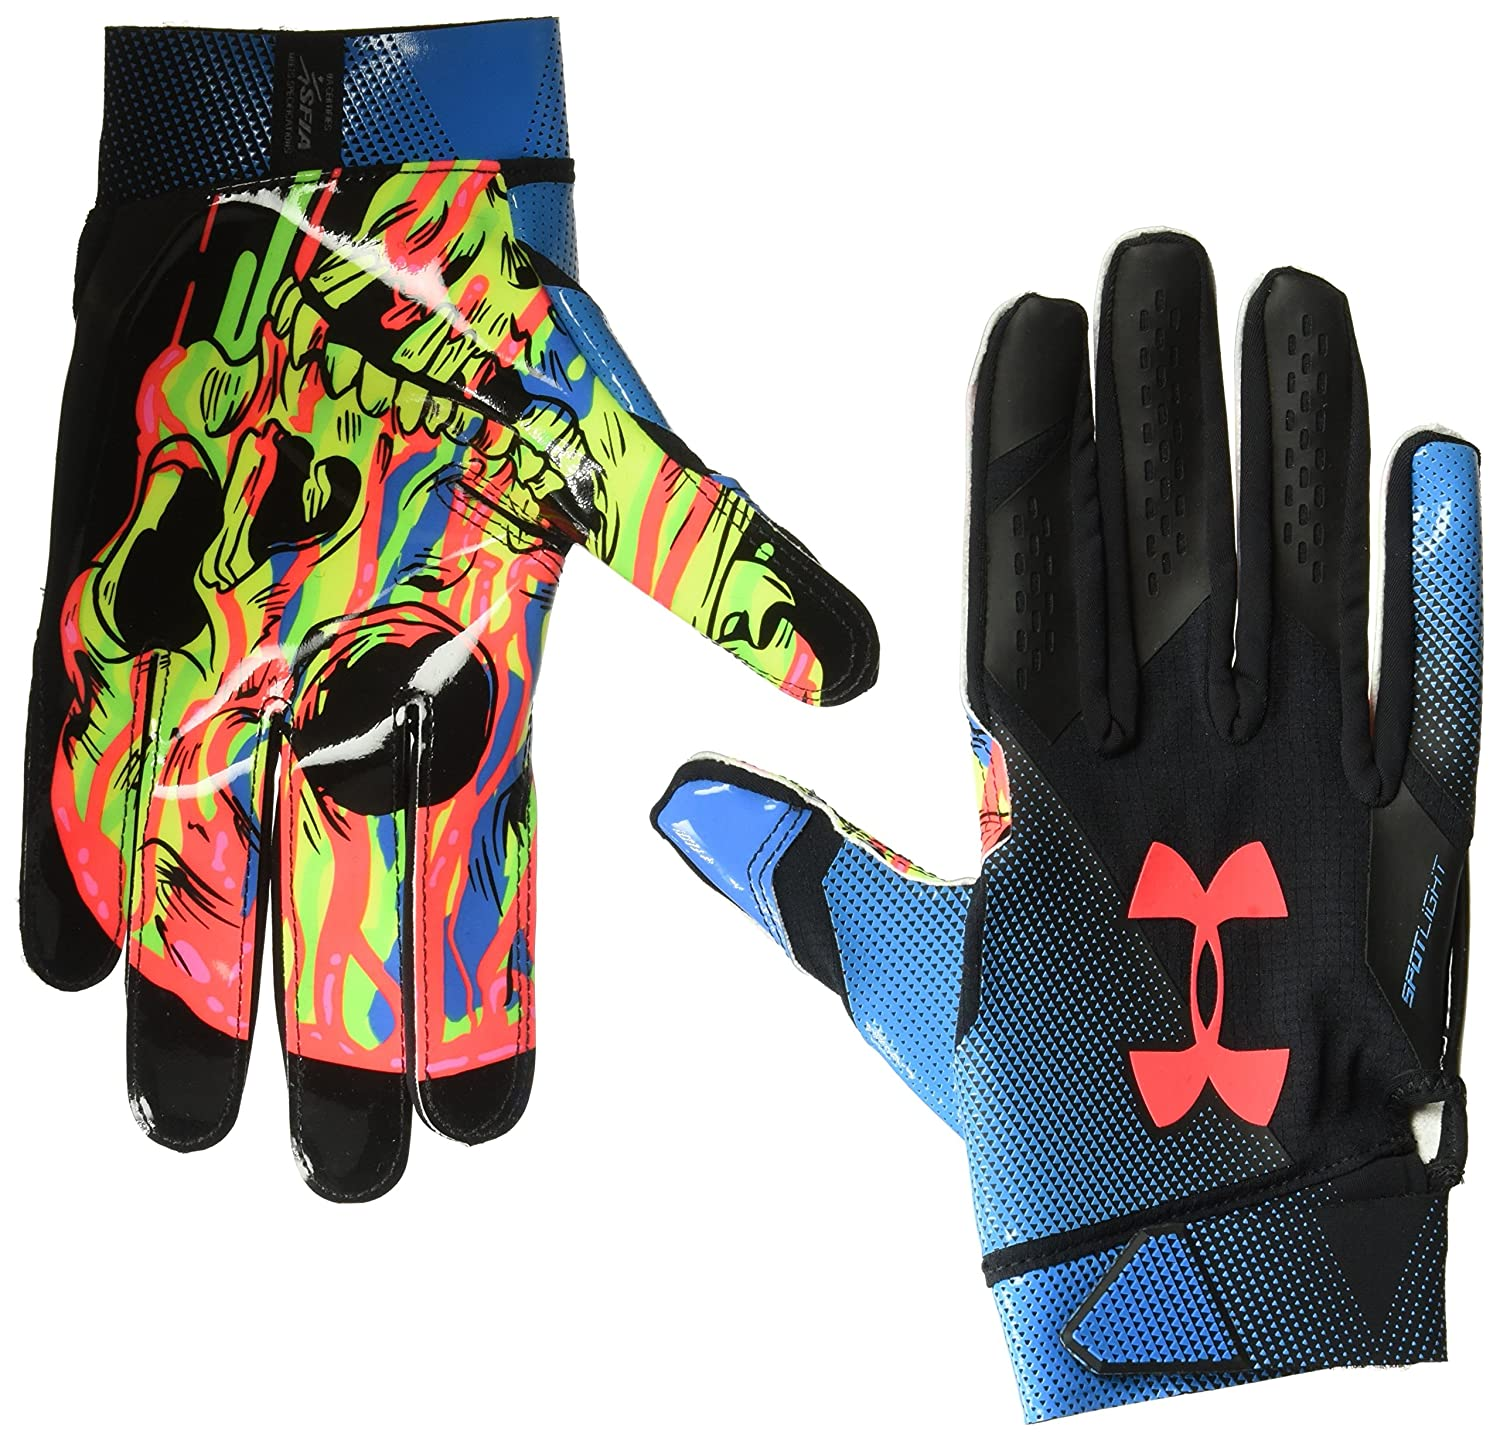 b9a5cc4fd1cf0 Amazon.com : Under Armour Men's Spotlight LE-NFL Football Gloves : Clothing